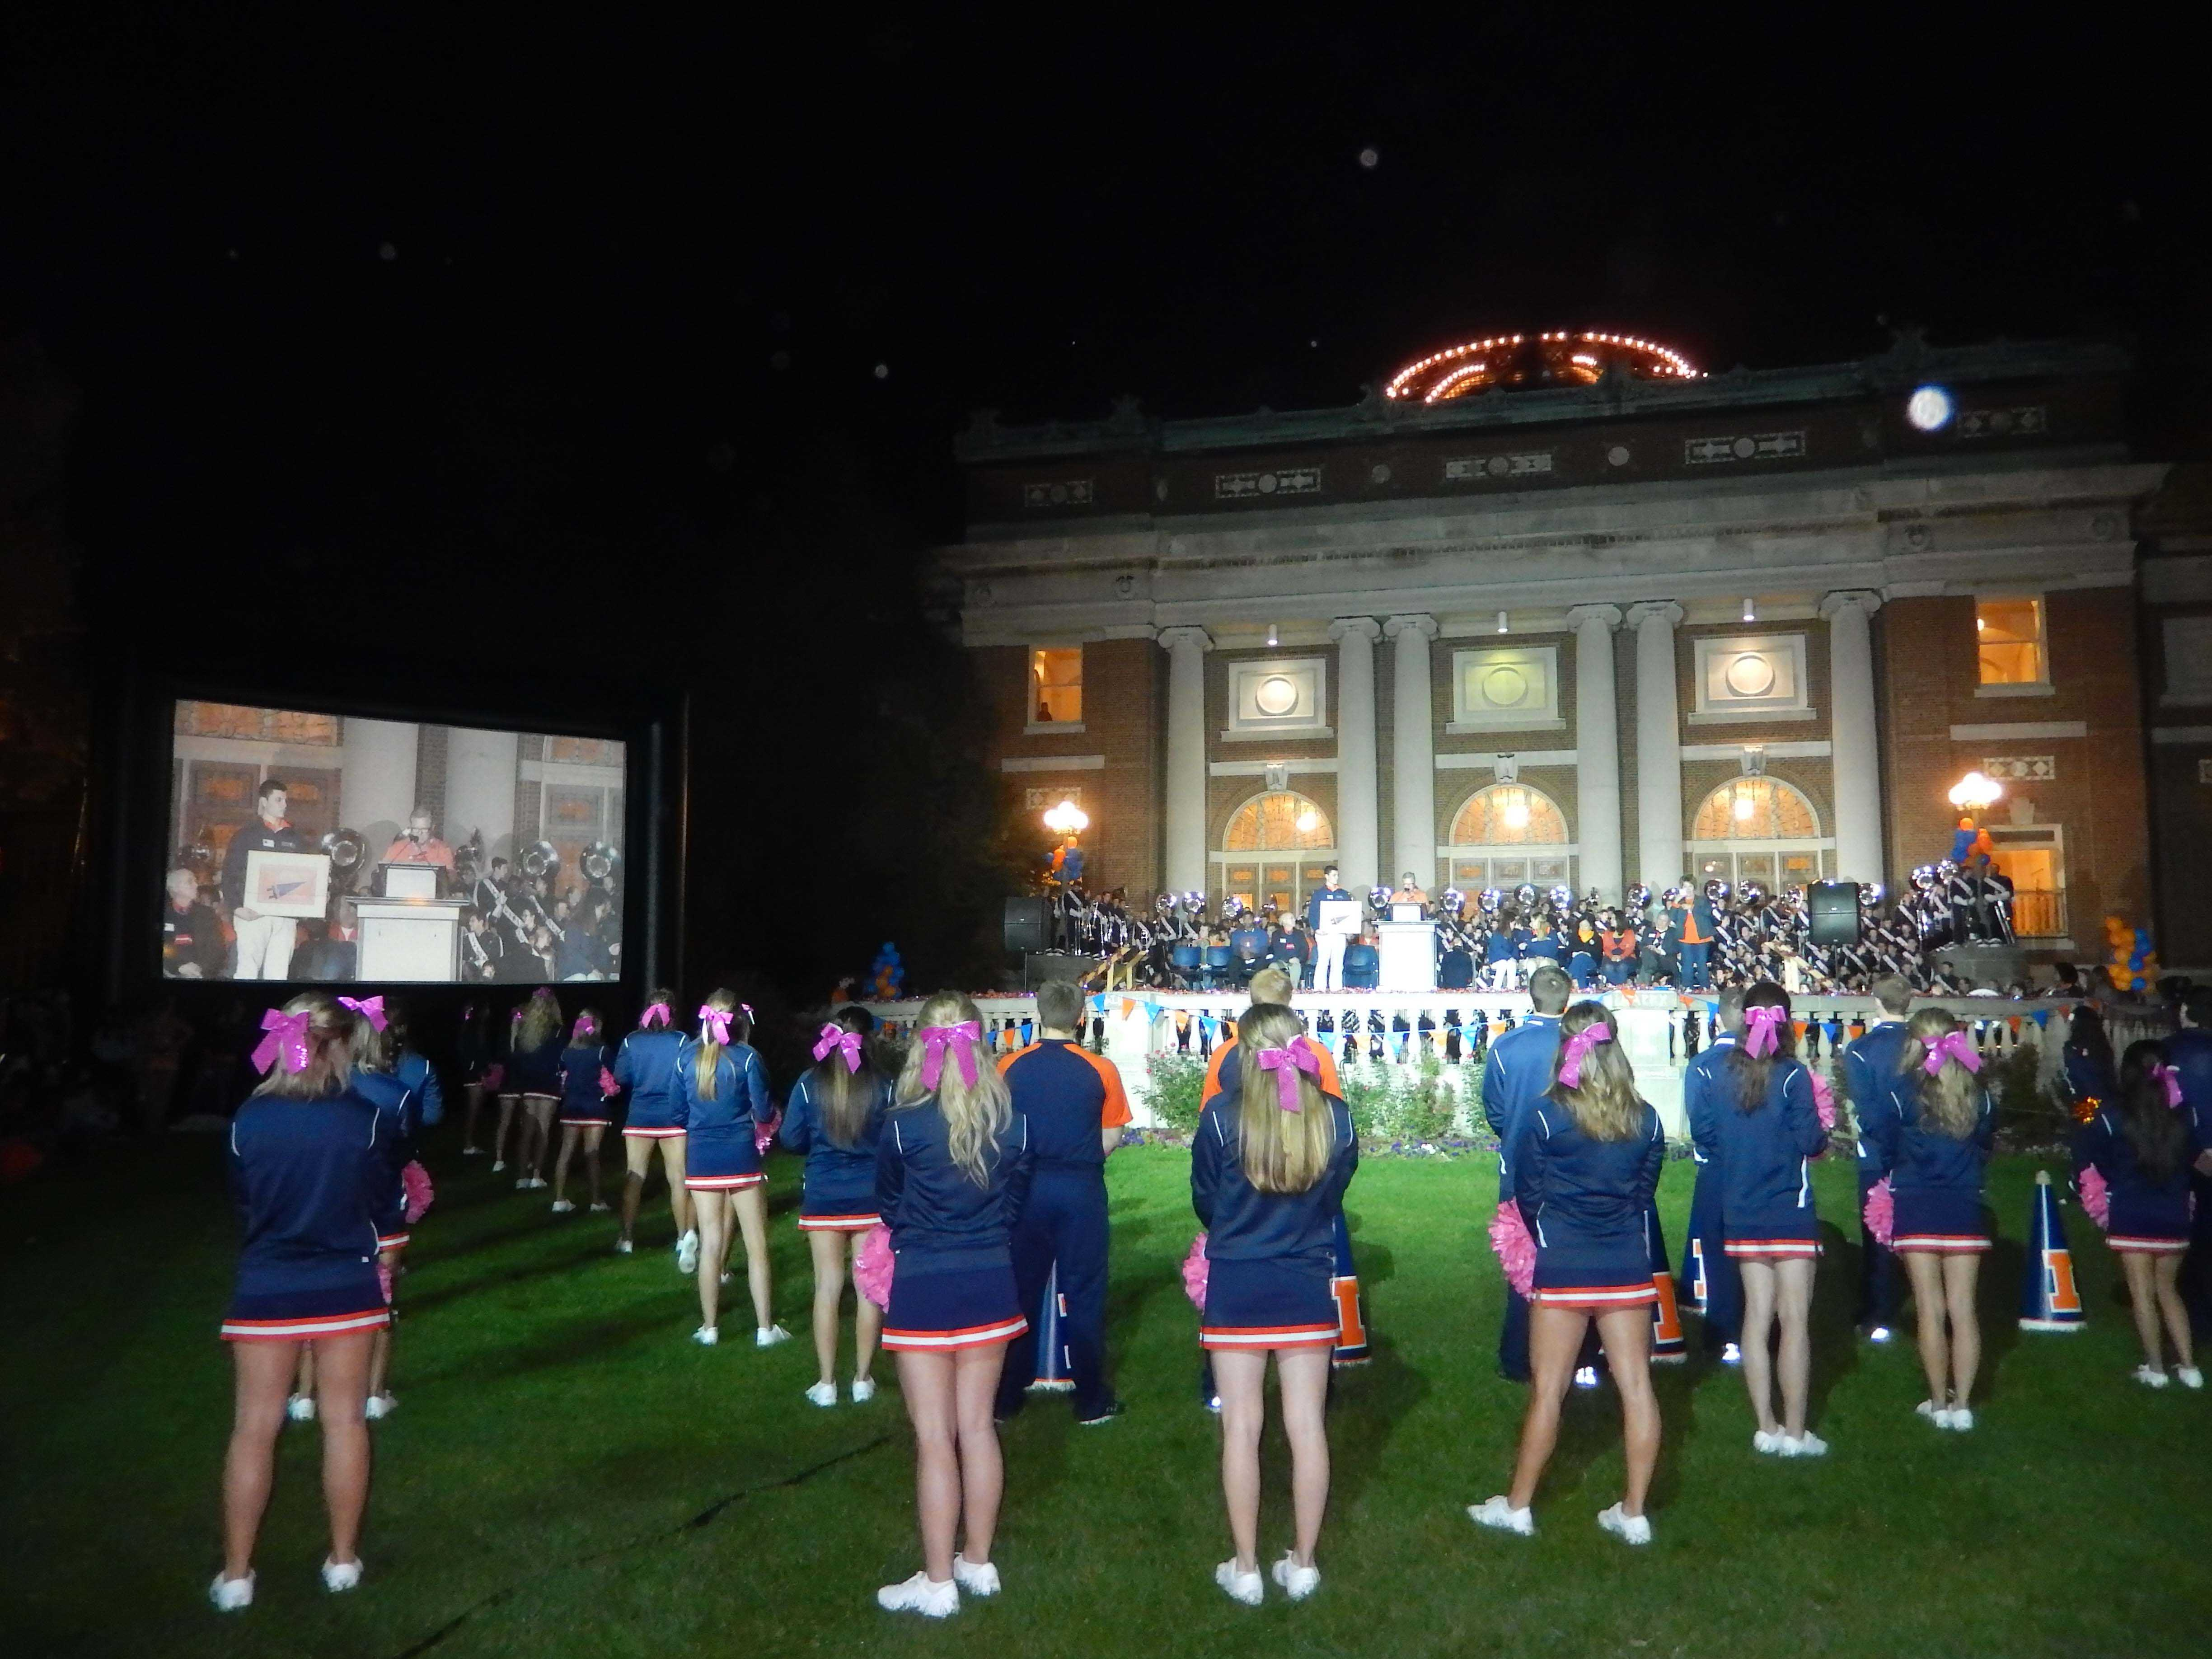 UIUC pep rally from last year's Homecoming.